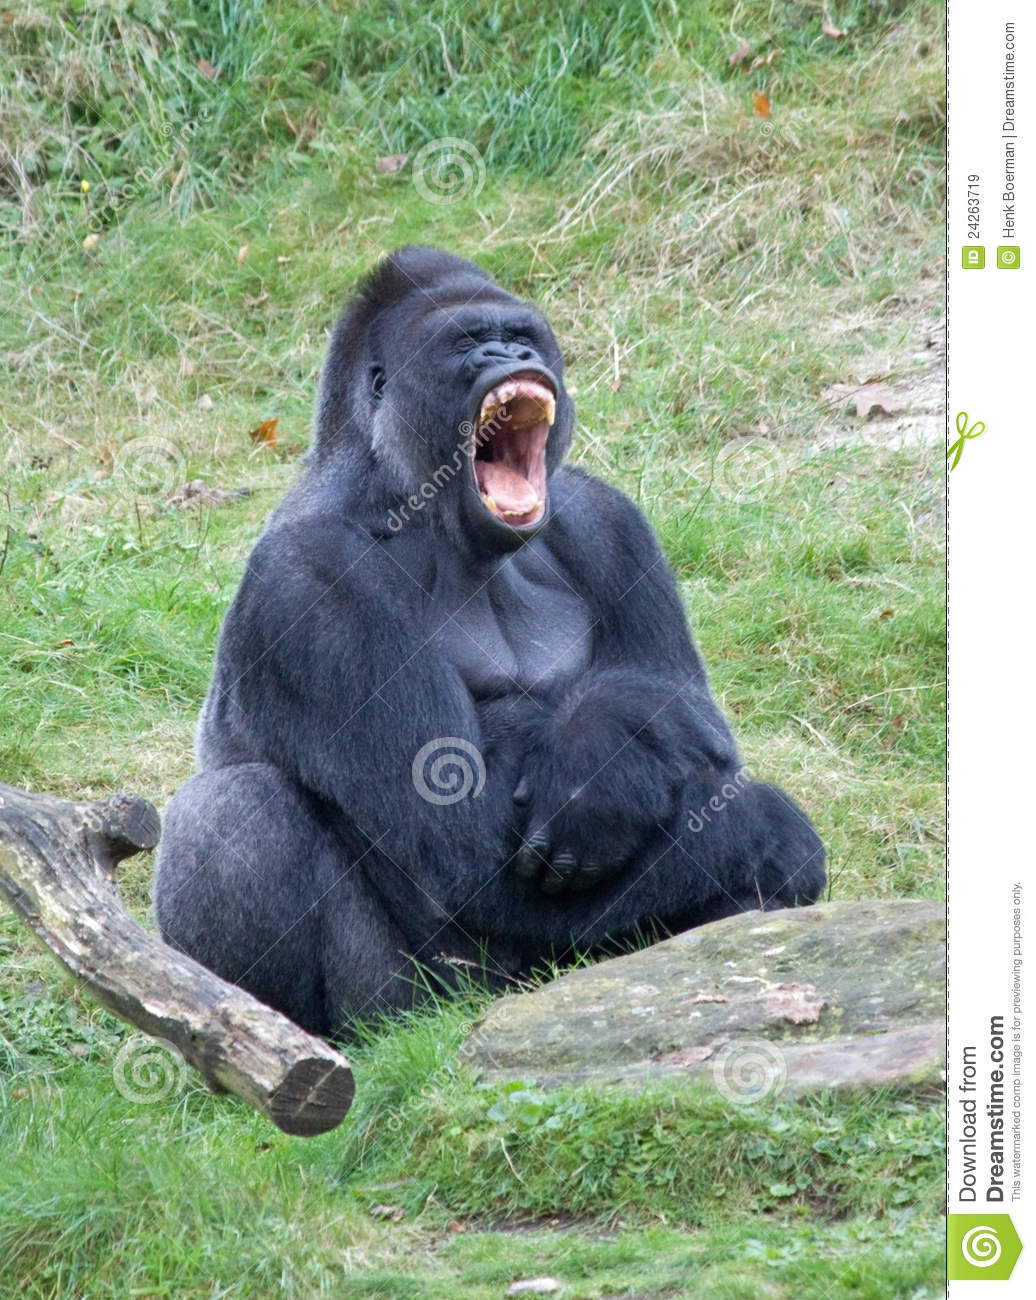 Angry gorilla stock image. Image of father, scary, kong ...